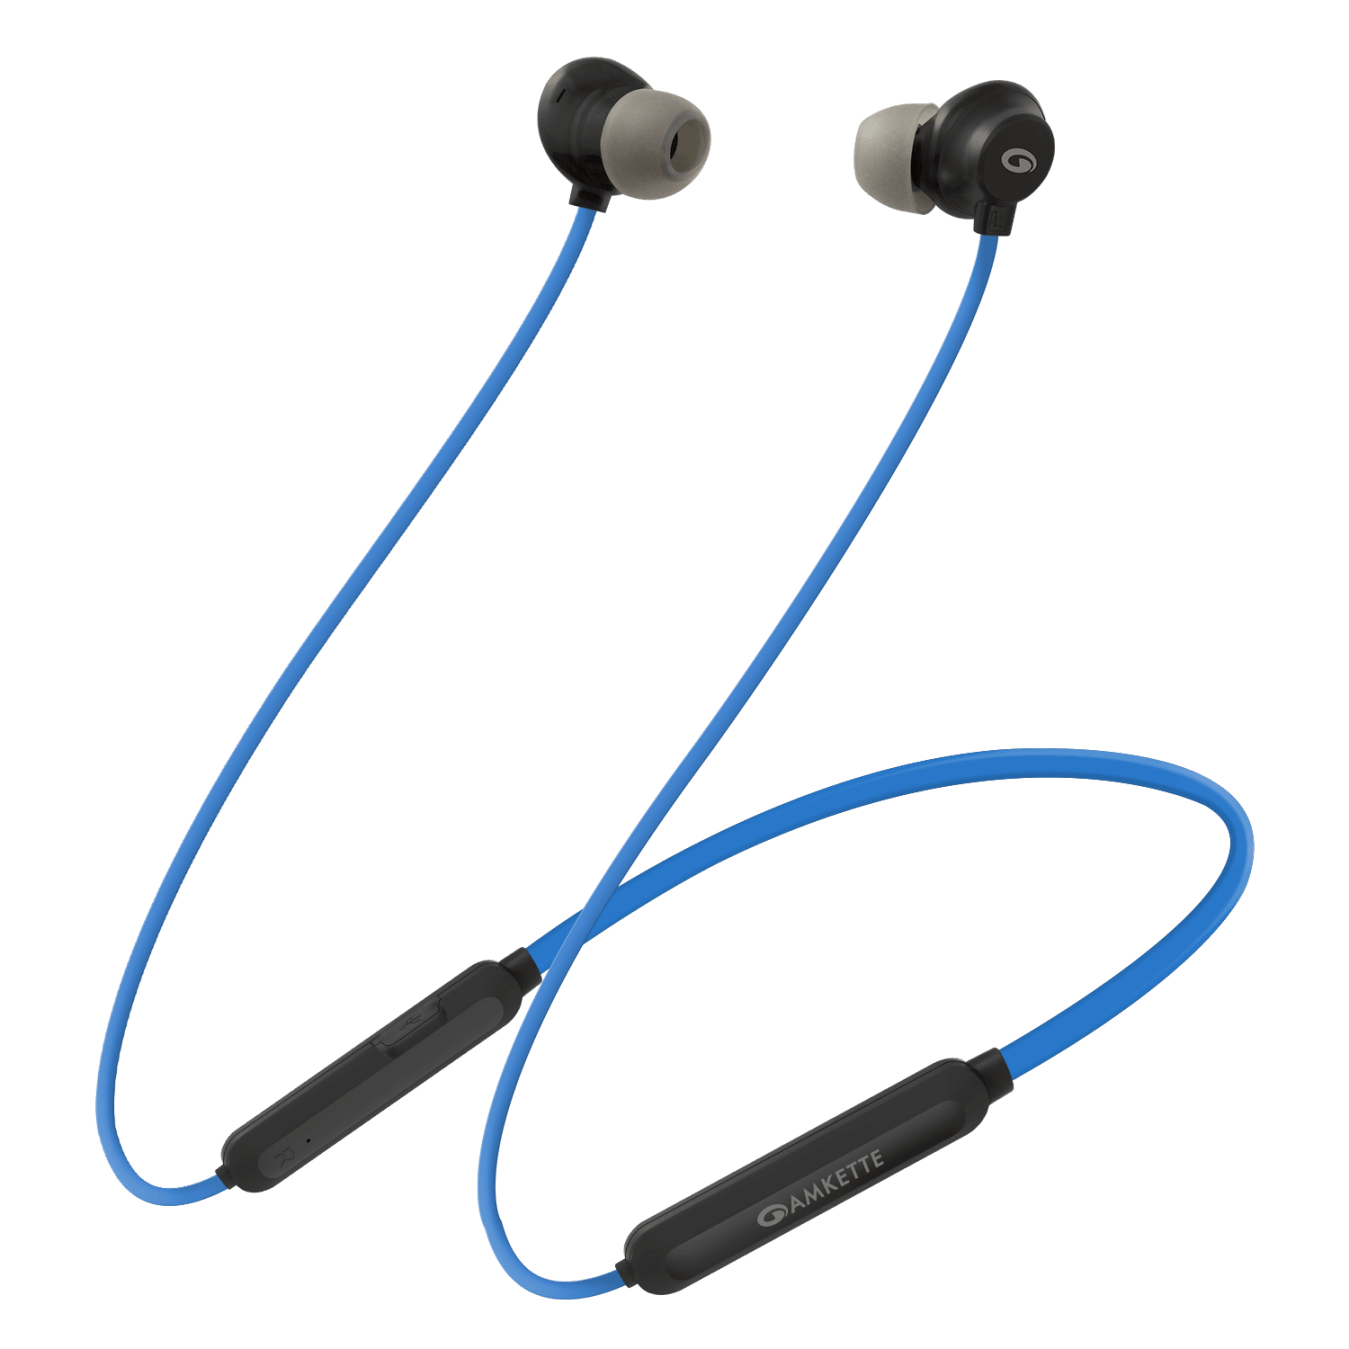 wireless earphones by amkette